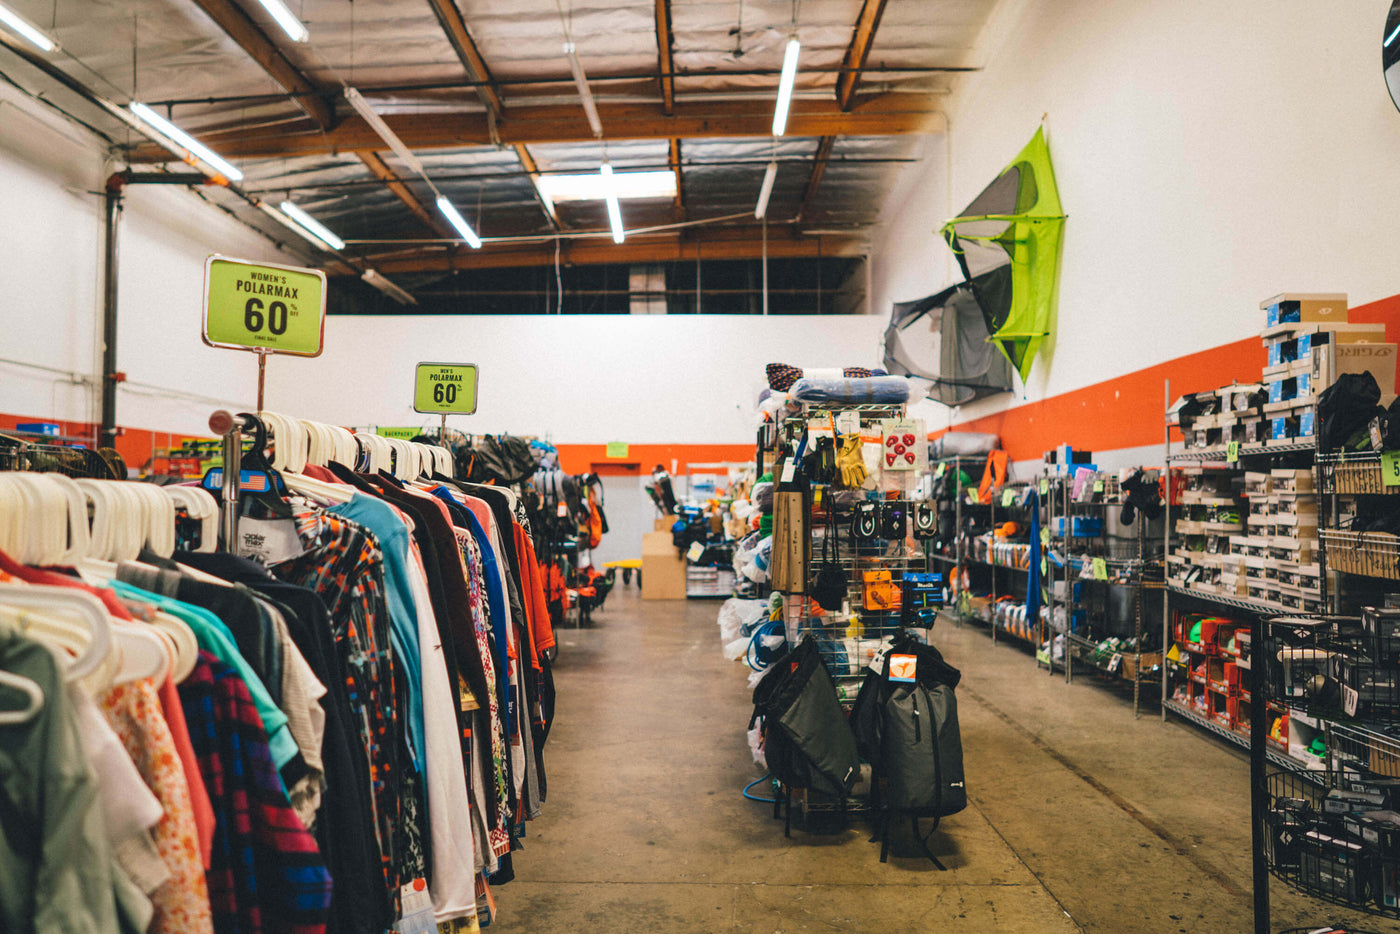 GCO - Gear Coop Outlet